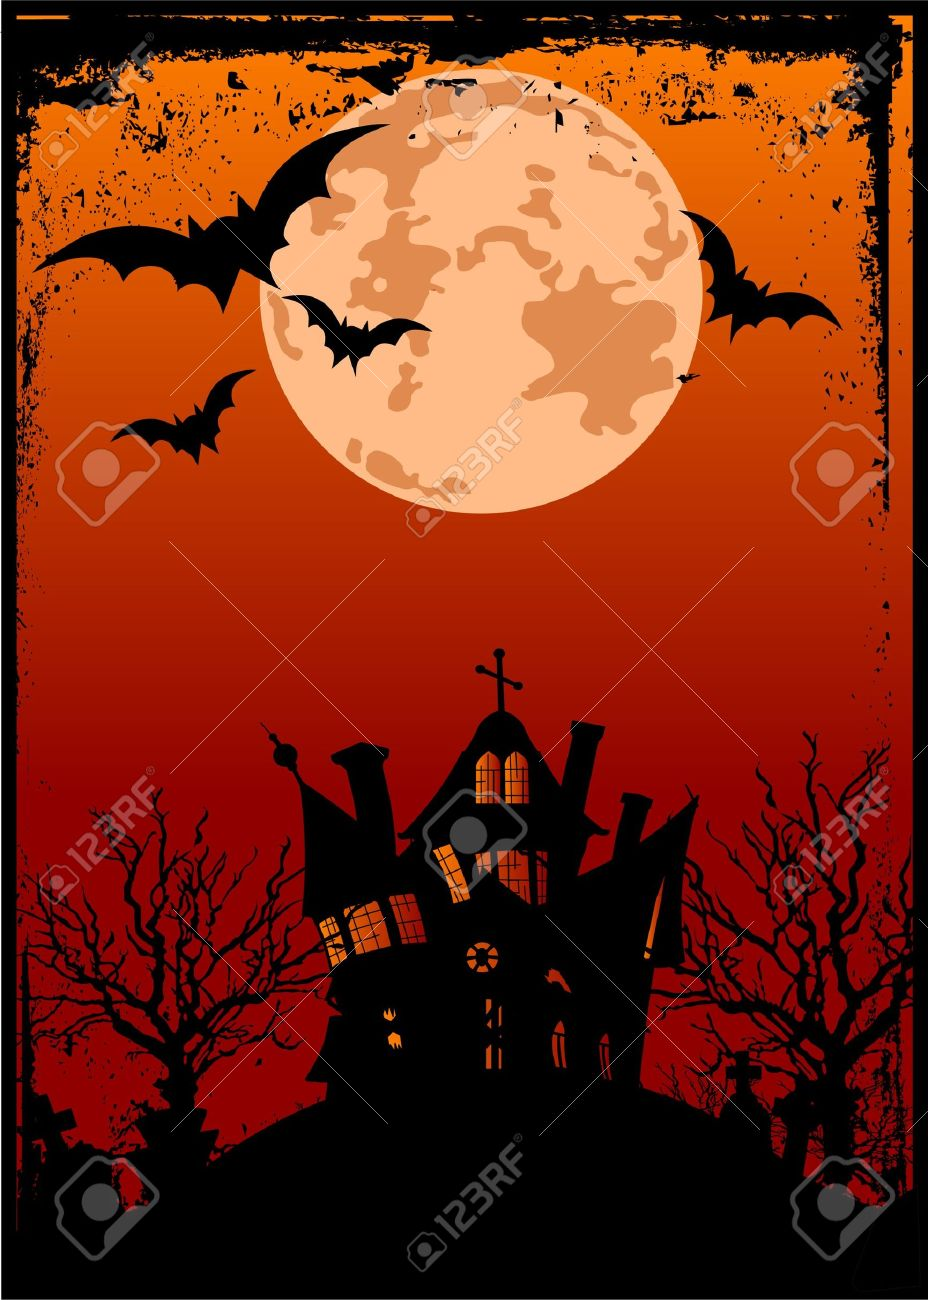 Grunge Halloween background with haunted house, bats and full moon Stock Vector - 8008623